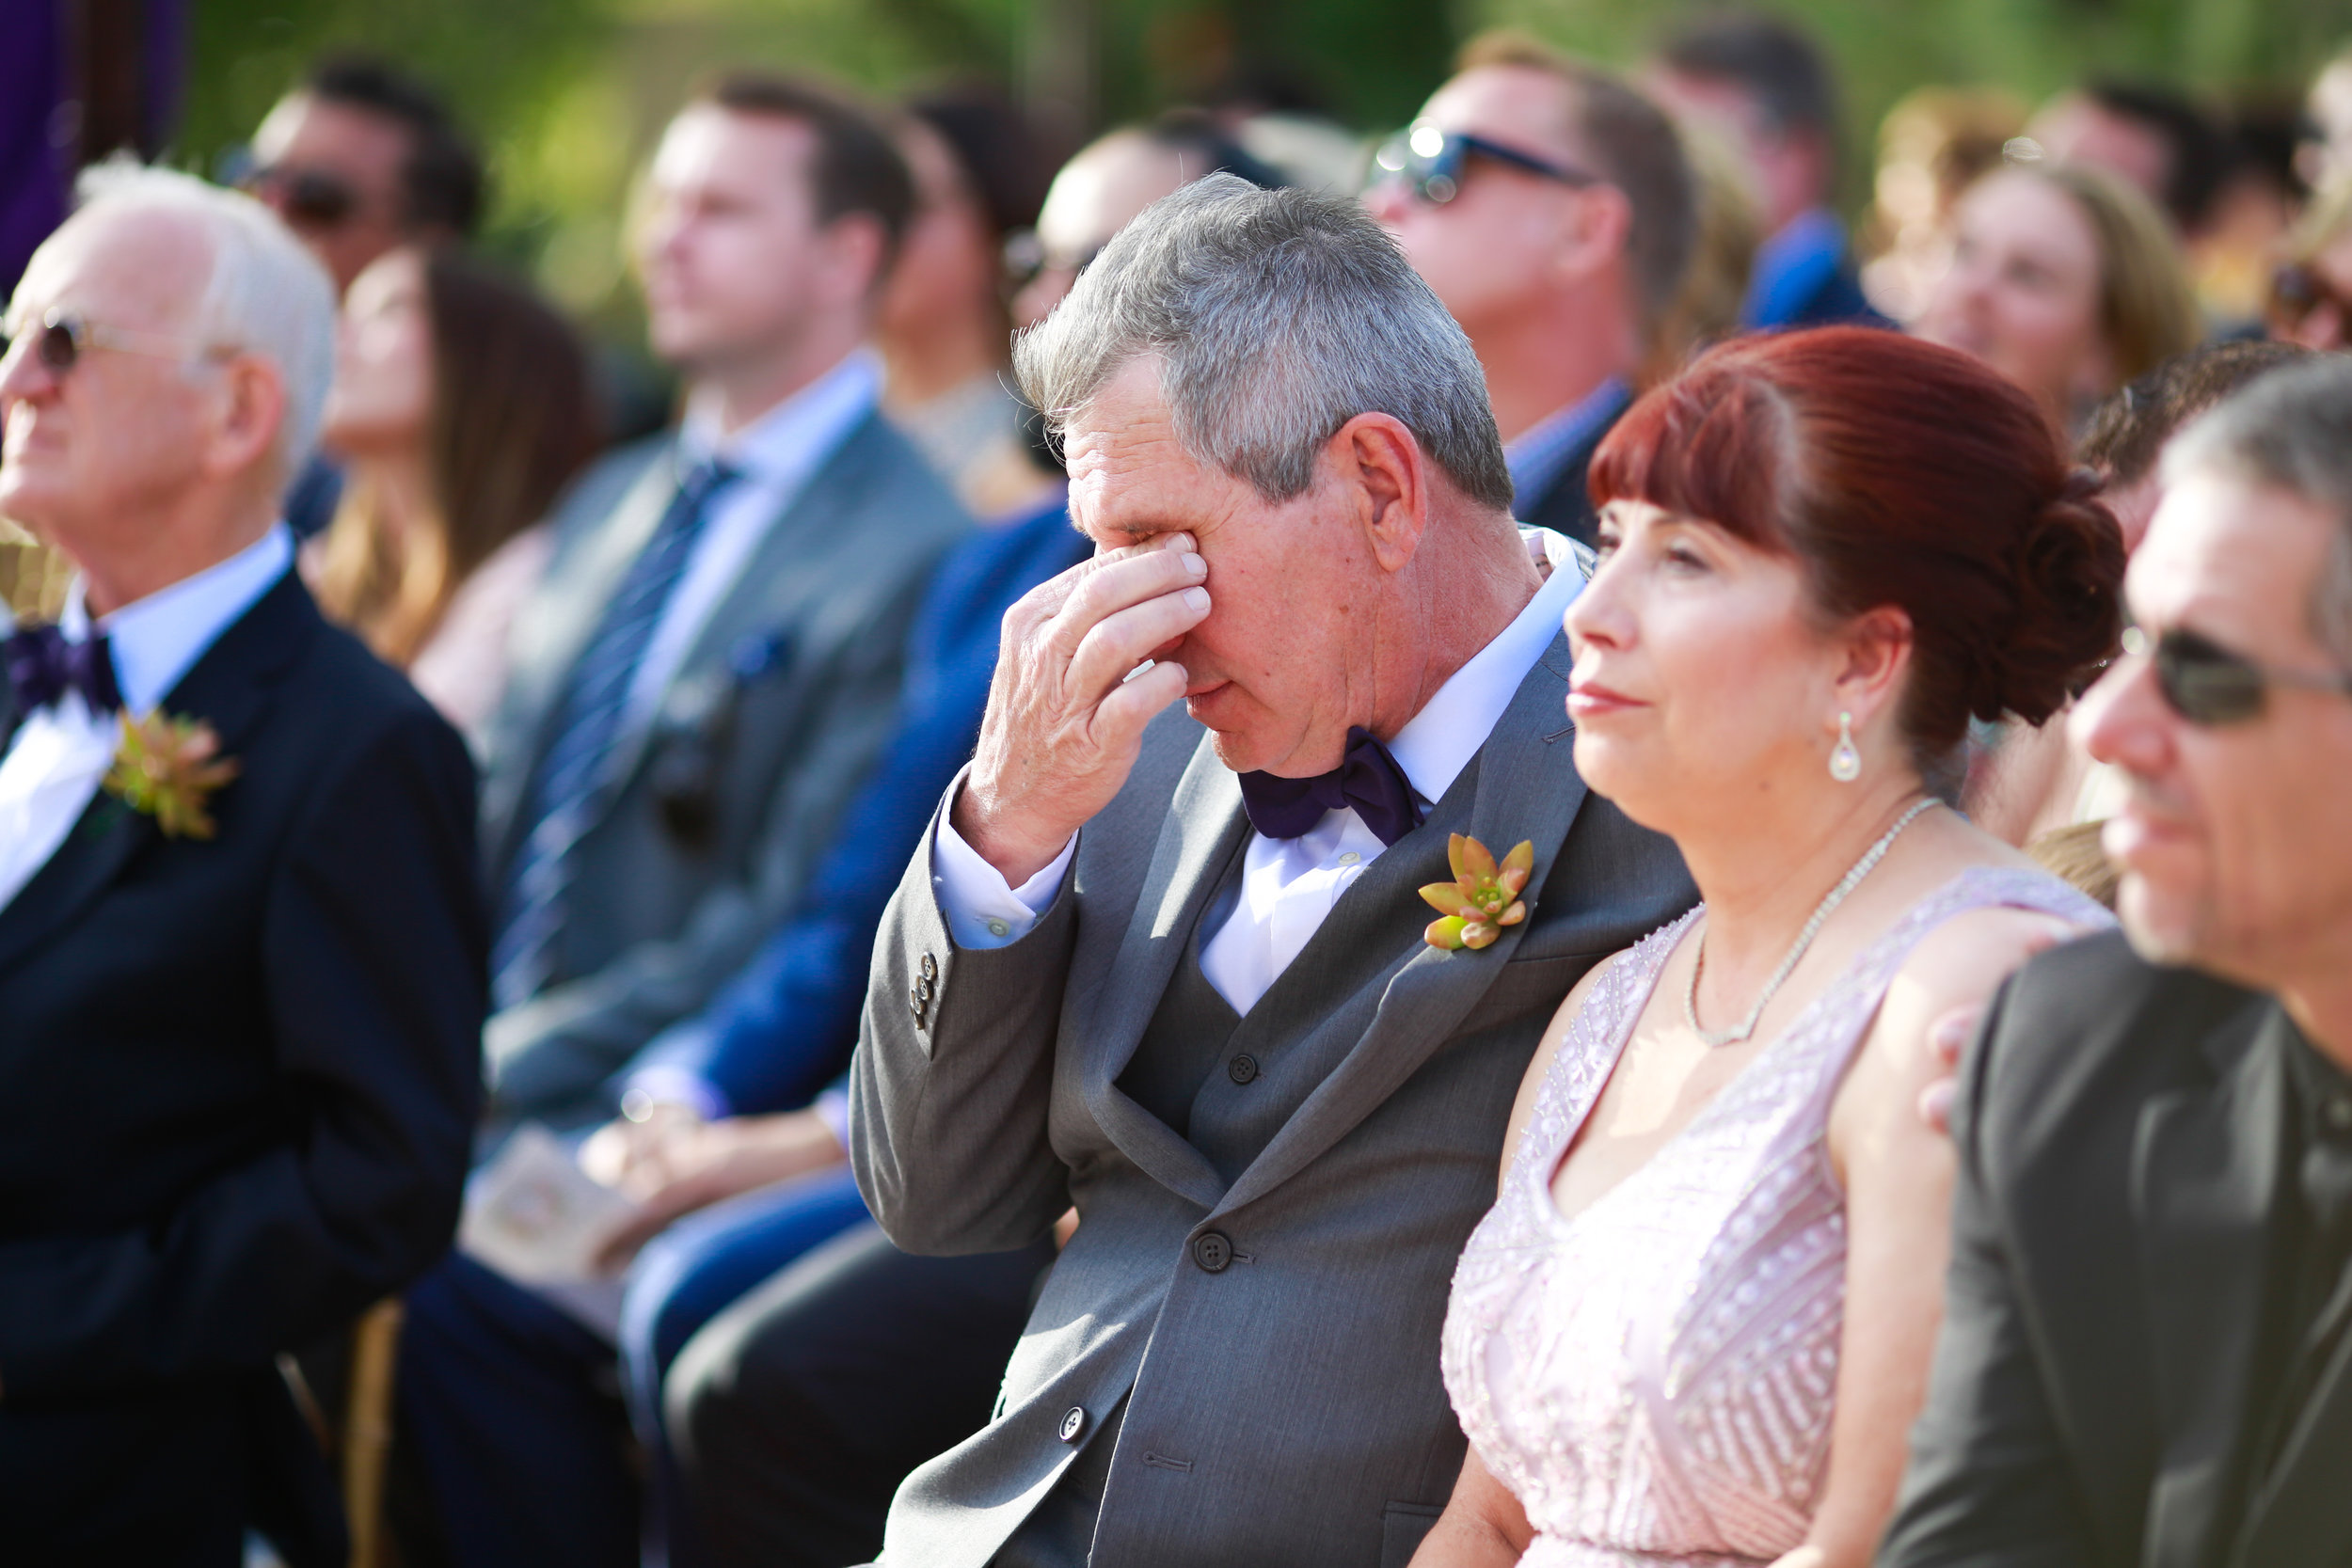 18 father and mother of the bride guests at ceremony Mod Wed Photography Life Design Events .jpg